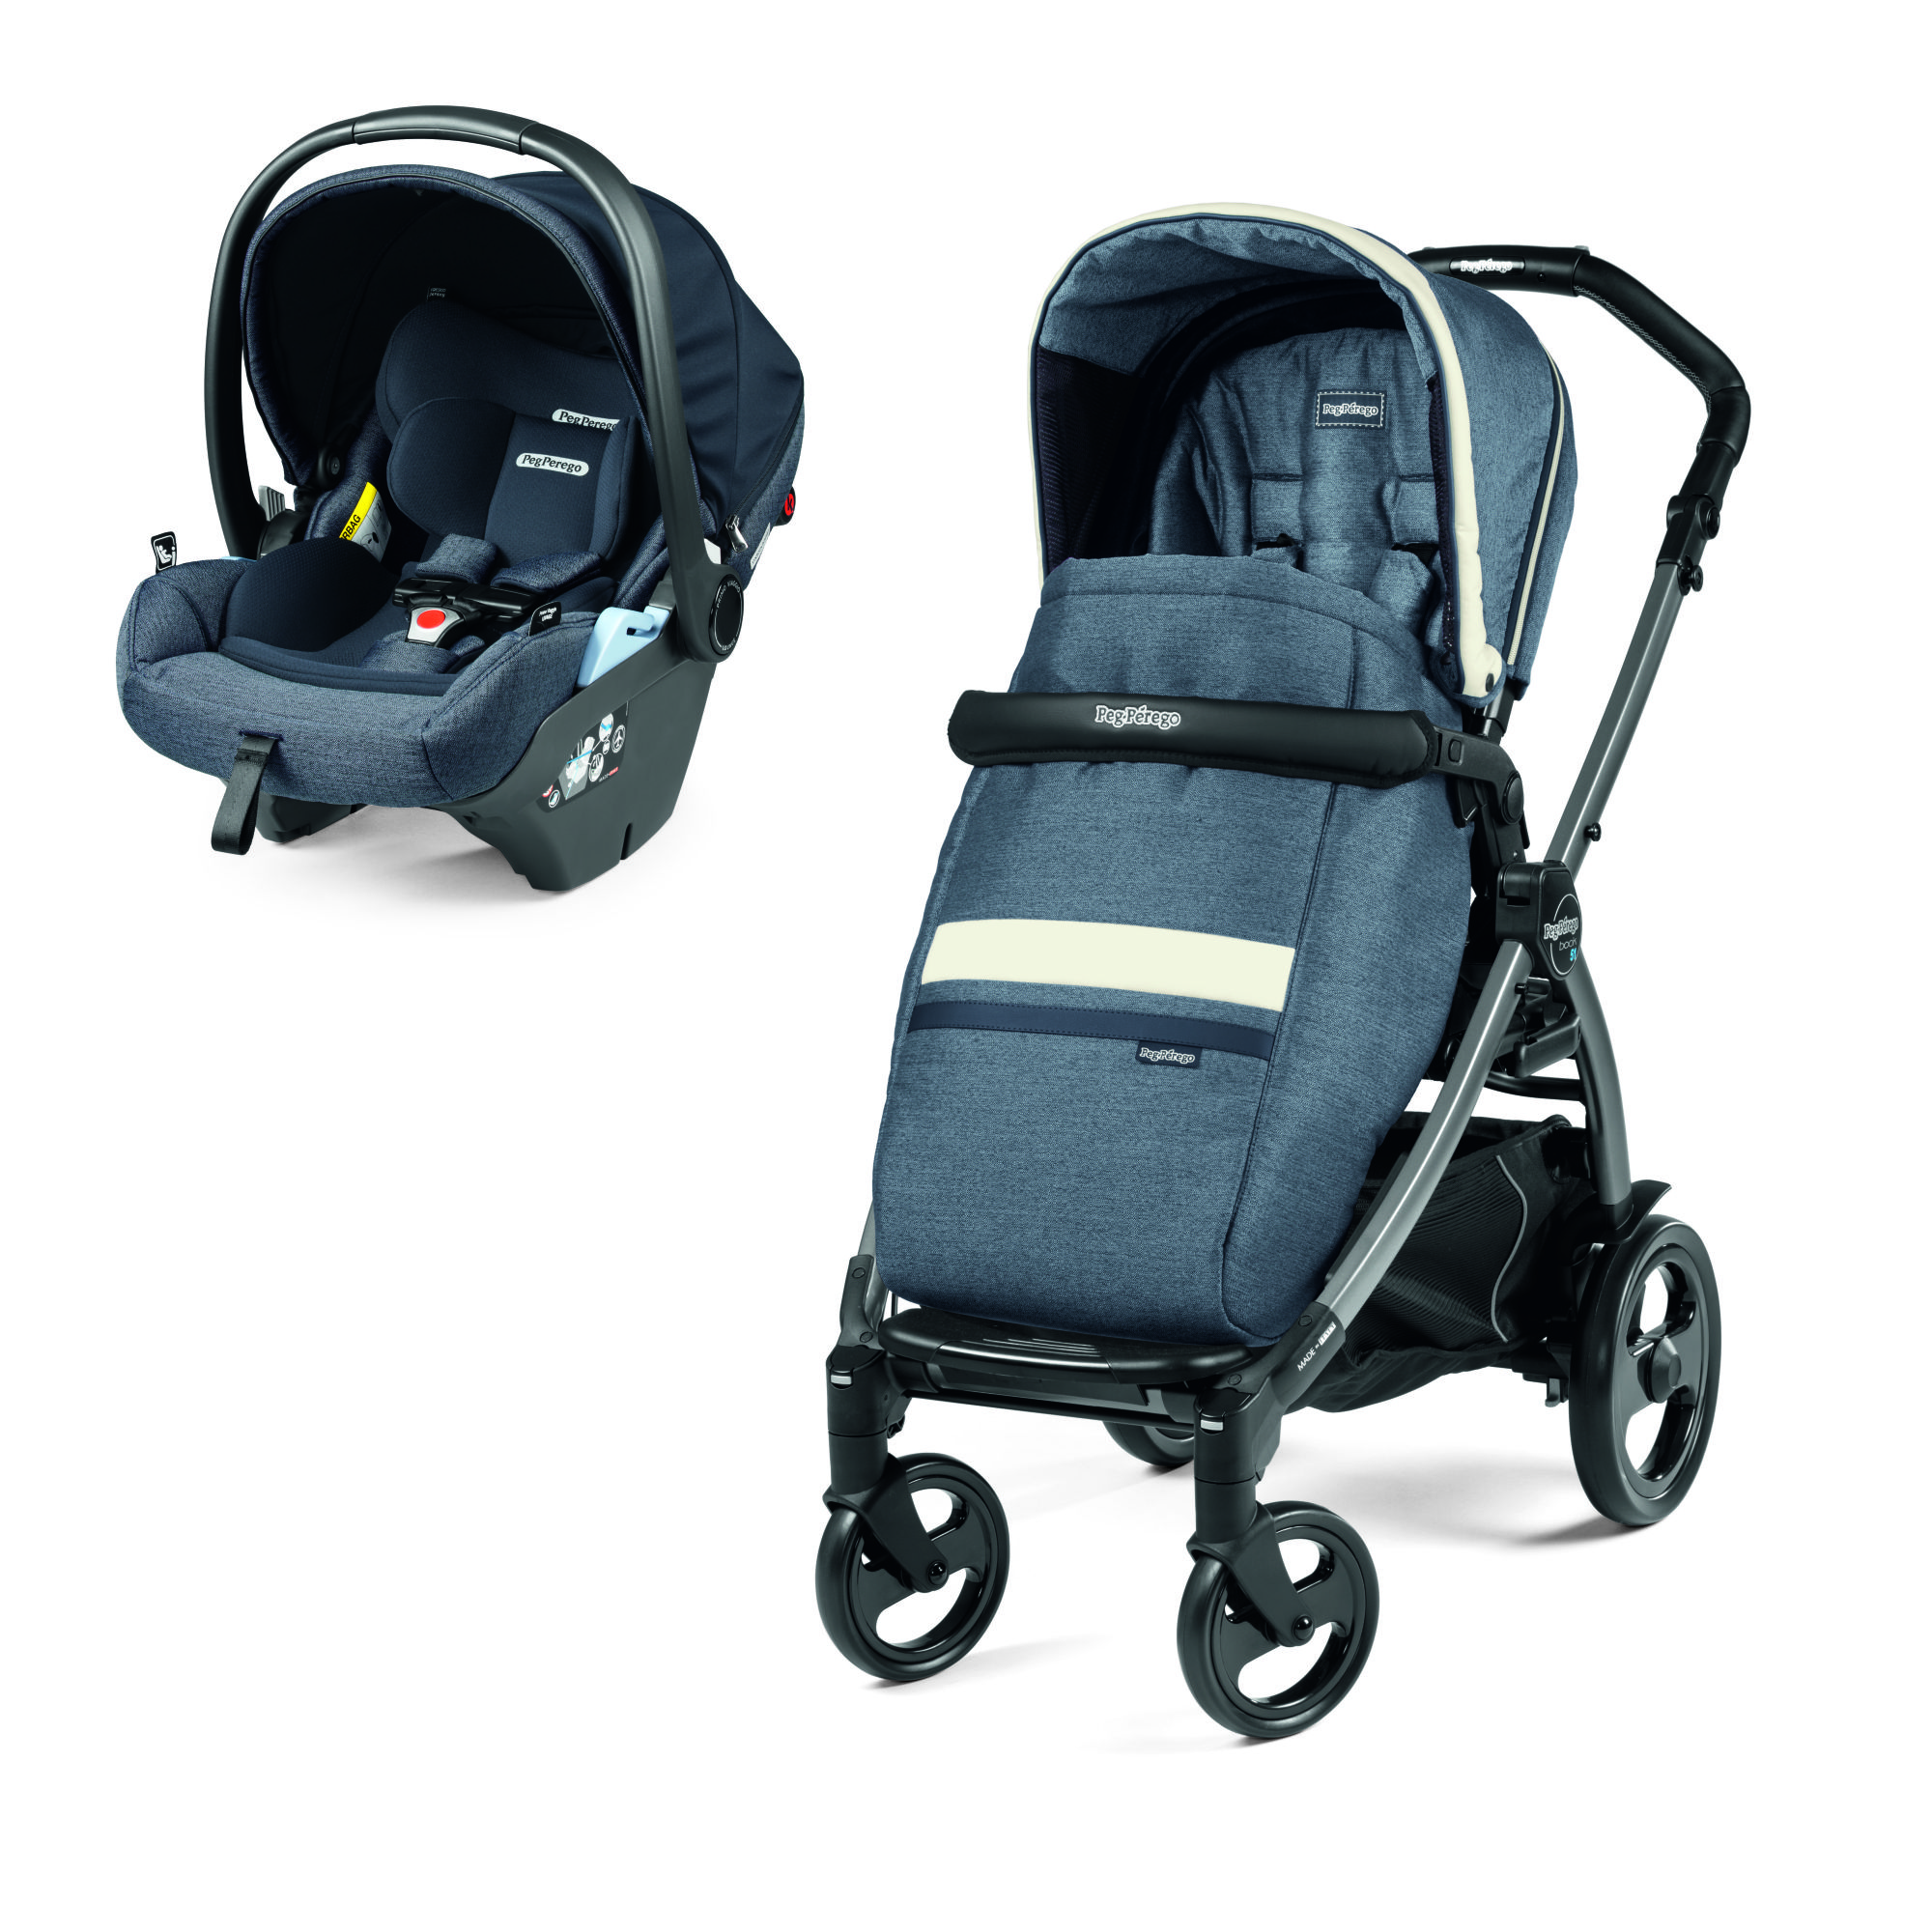 Carucior 2 in 1 Peg Perego, Book 51 Titania, Lounge, Luxe Mirage